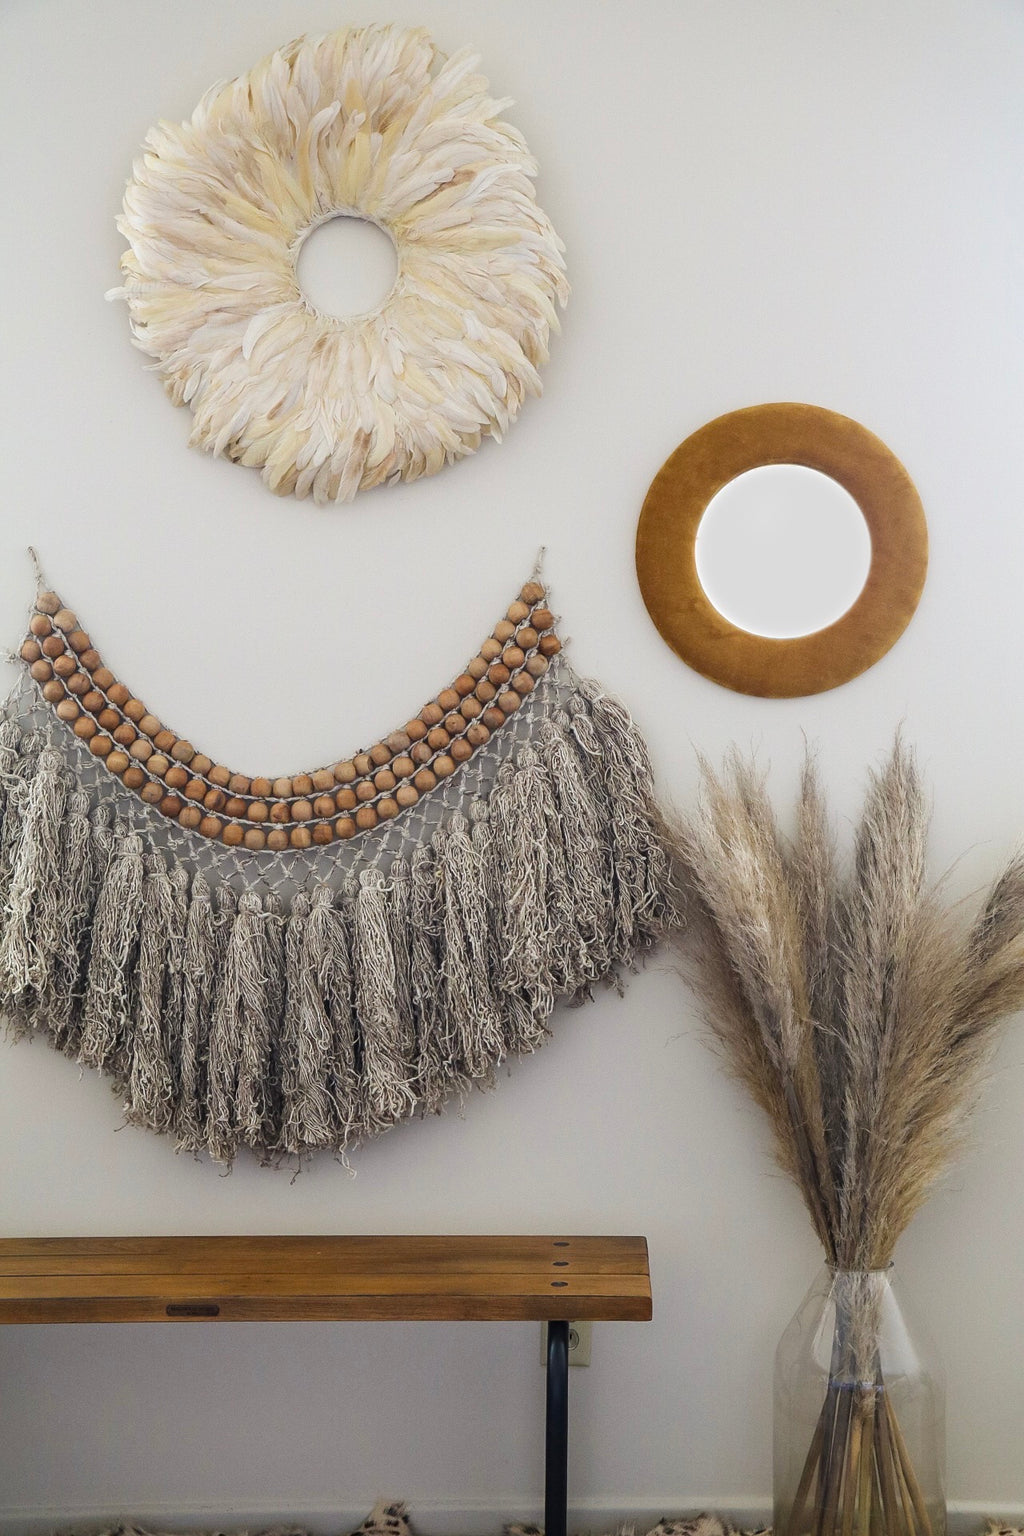 Feather Wall Decor - Effortless Composition